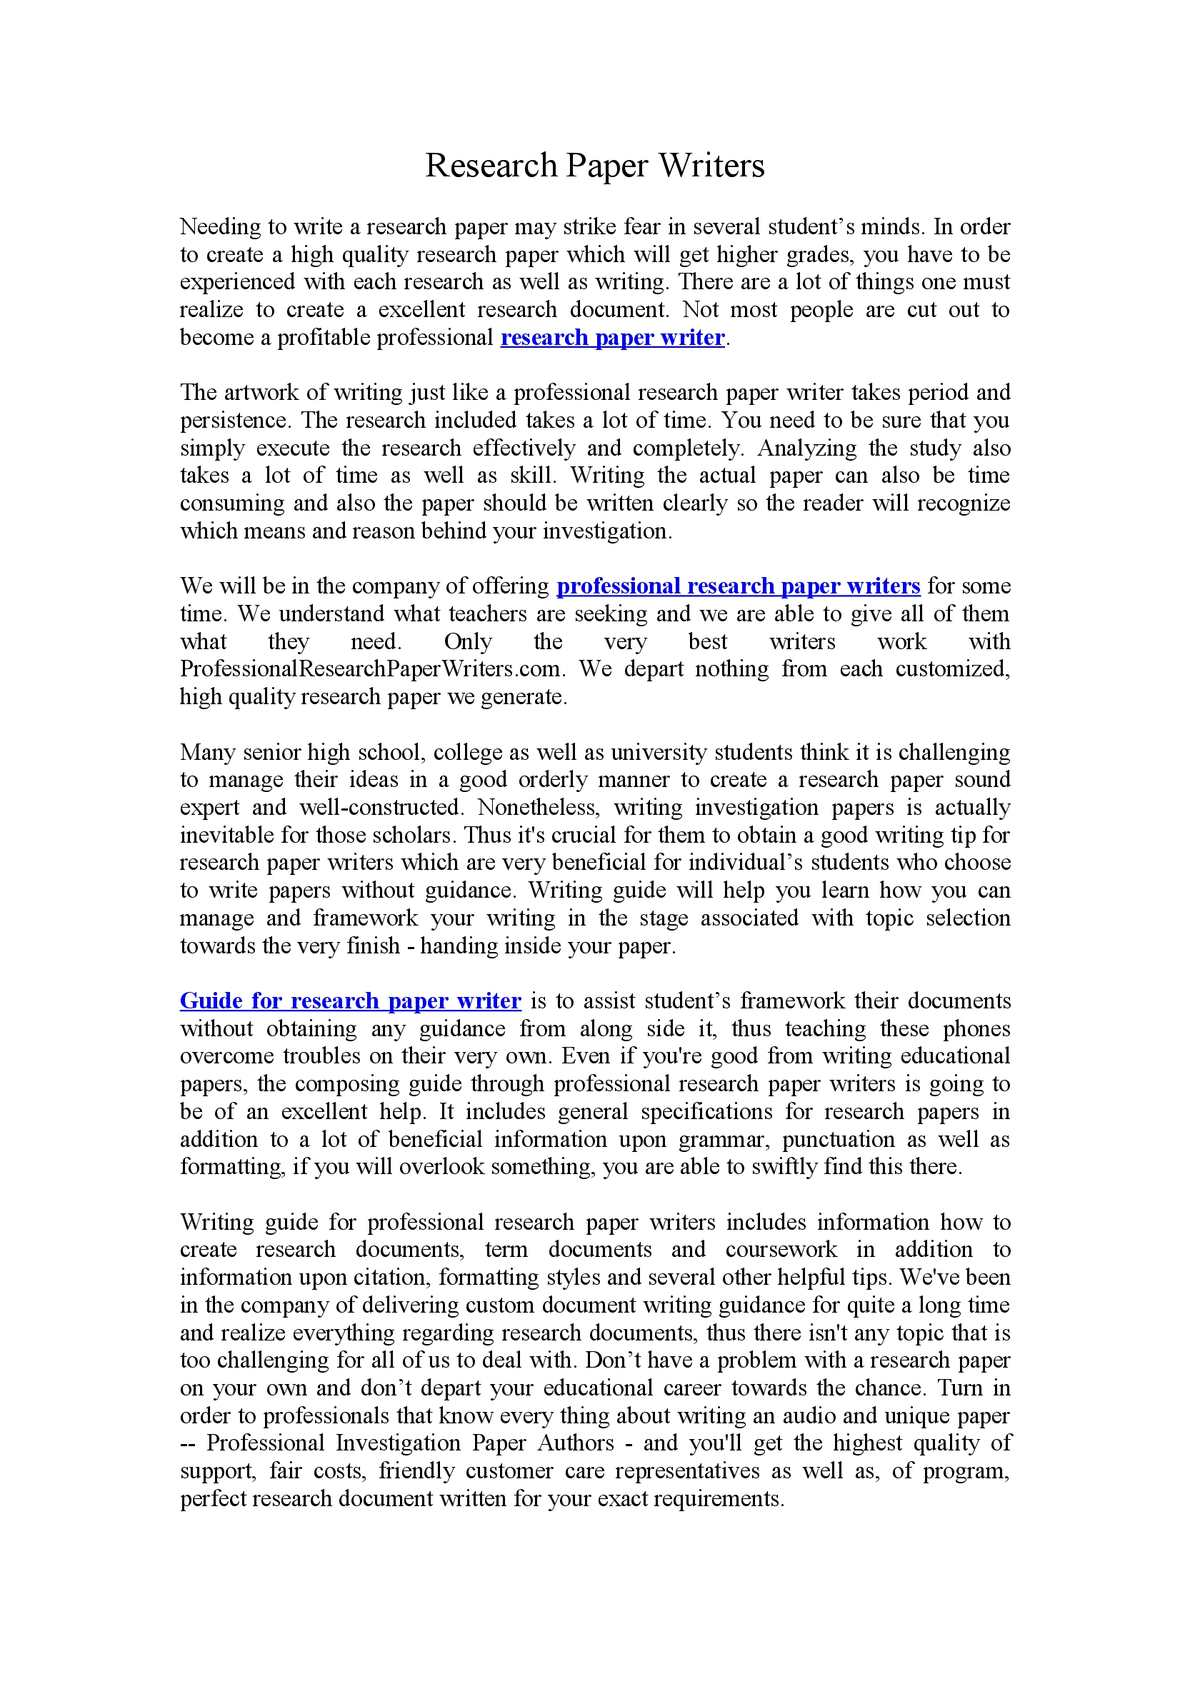 Professional research paper writing site statements of purpose